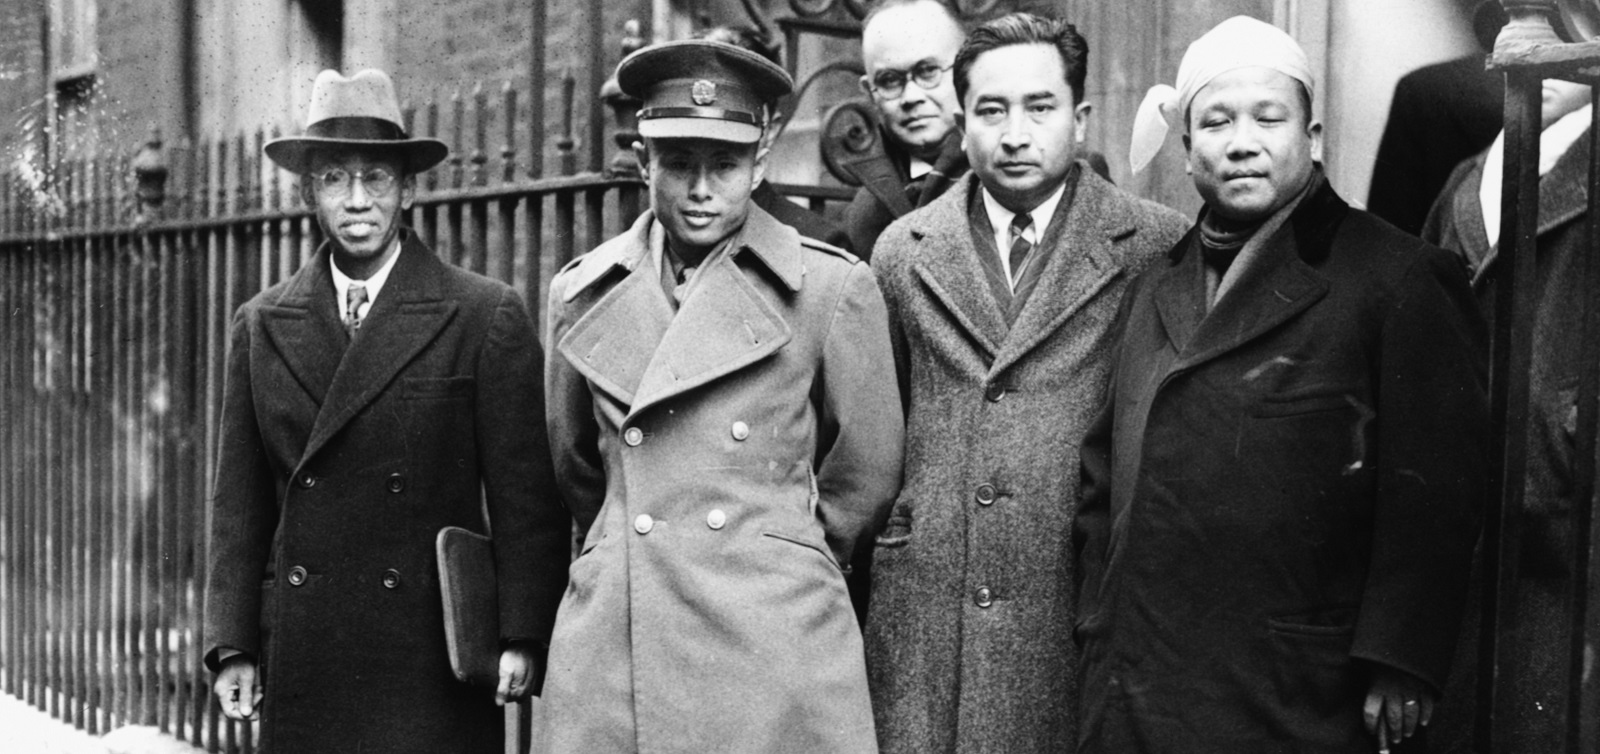 Burmese Vice President Aung San (second from left) with his delegation at 10 Downing Street on 13 January 1947 (Photo: Keystone/Hulton Archive/Getty Images)